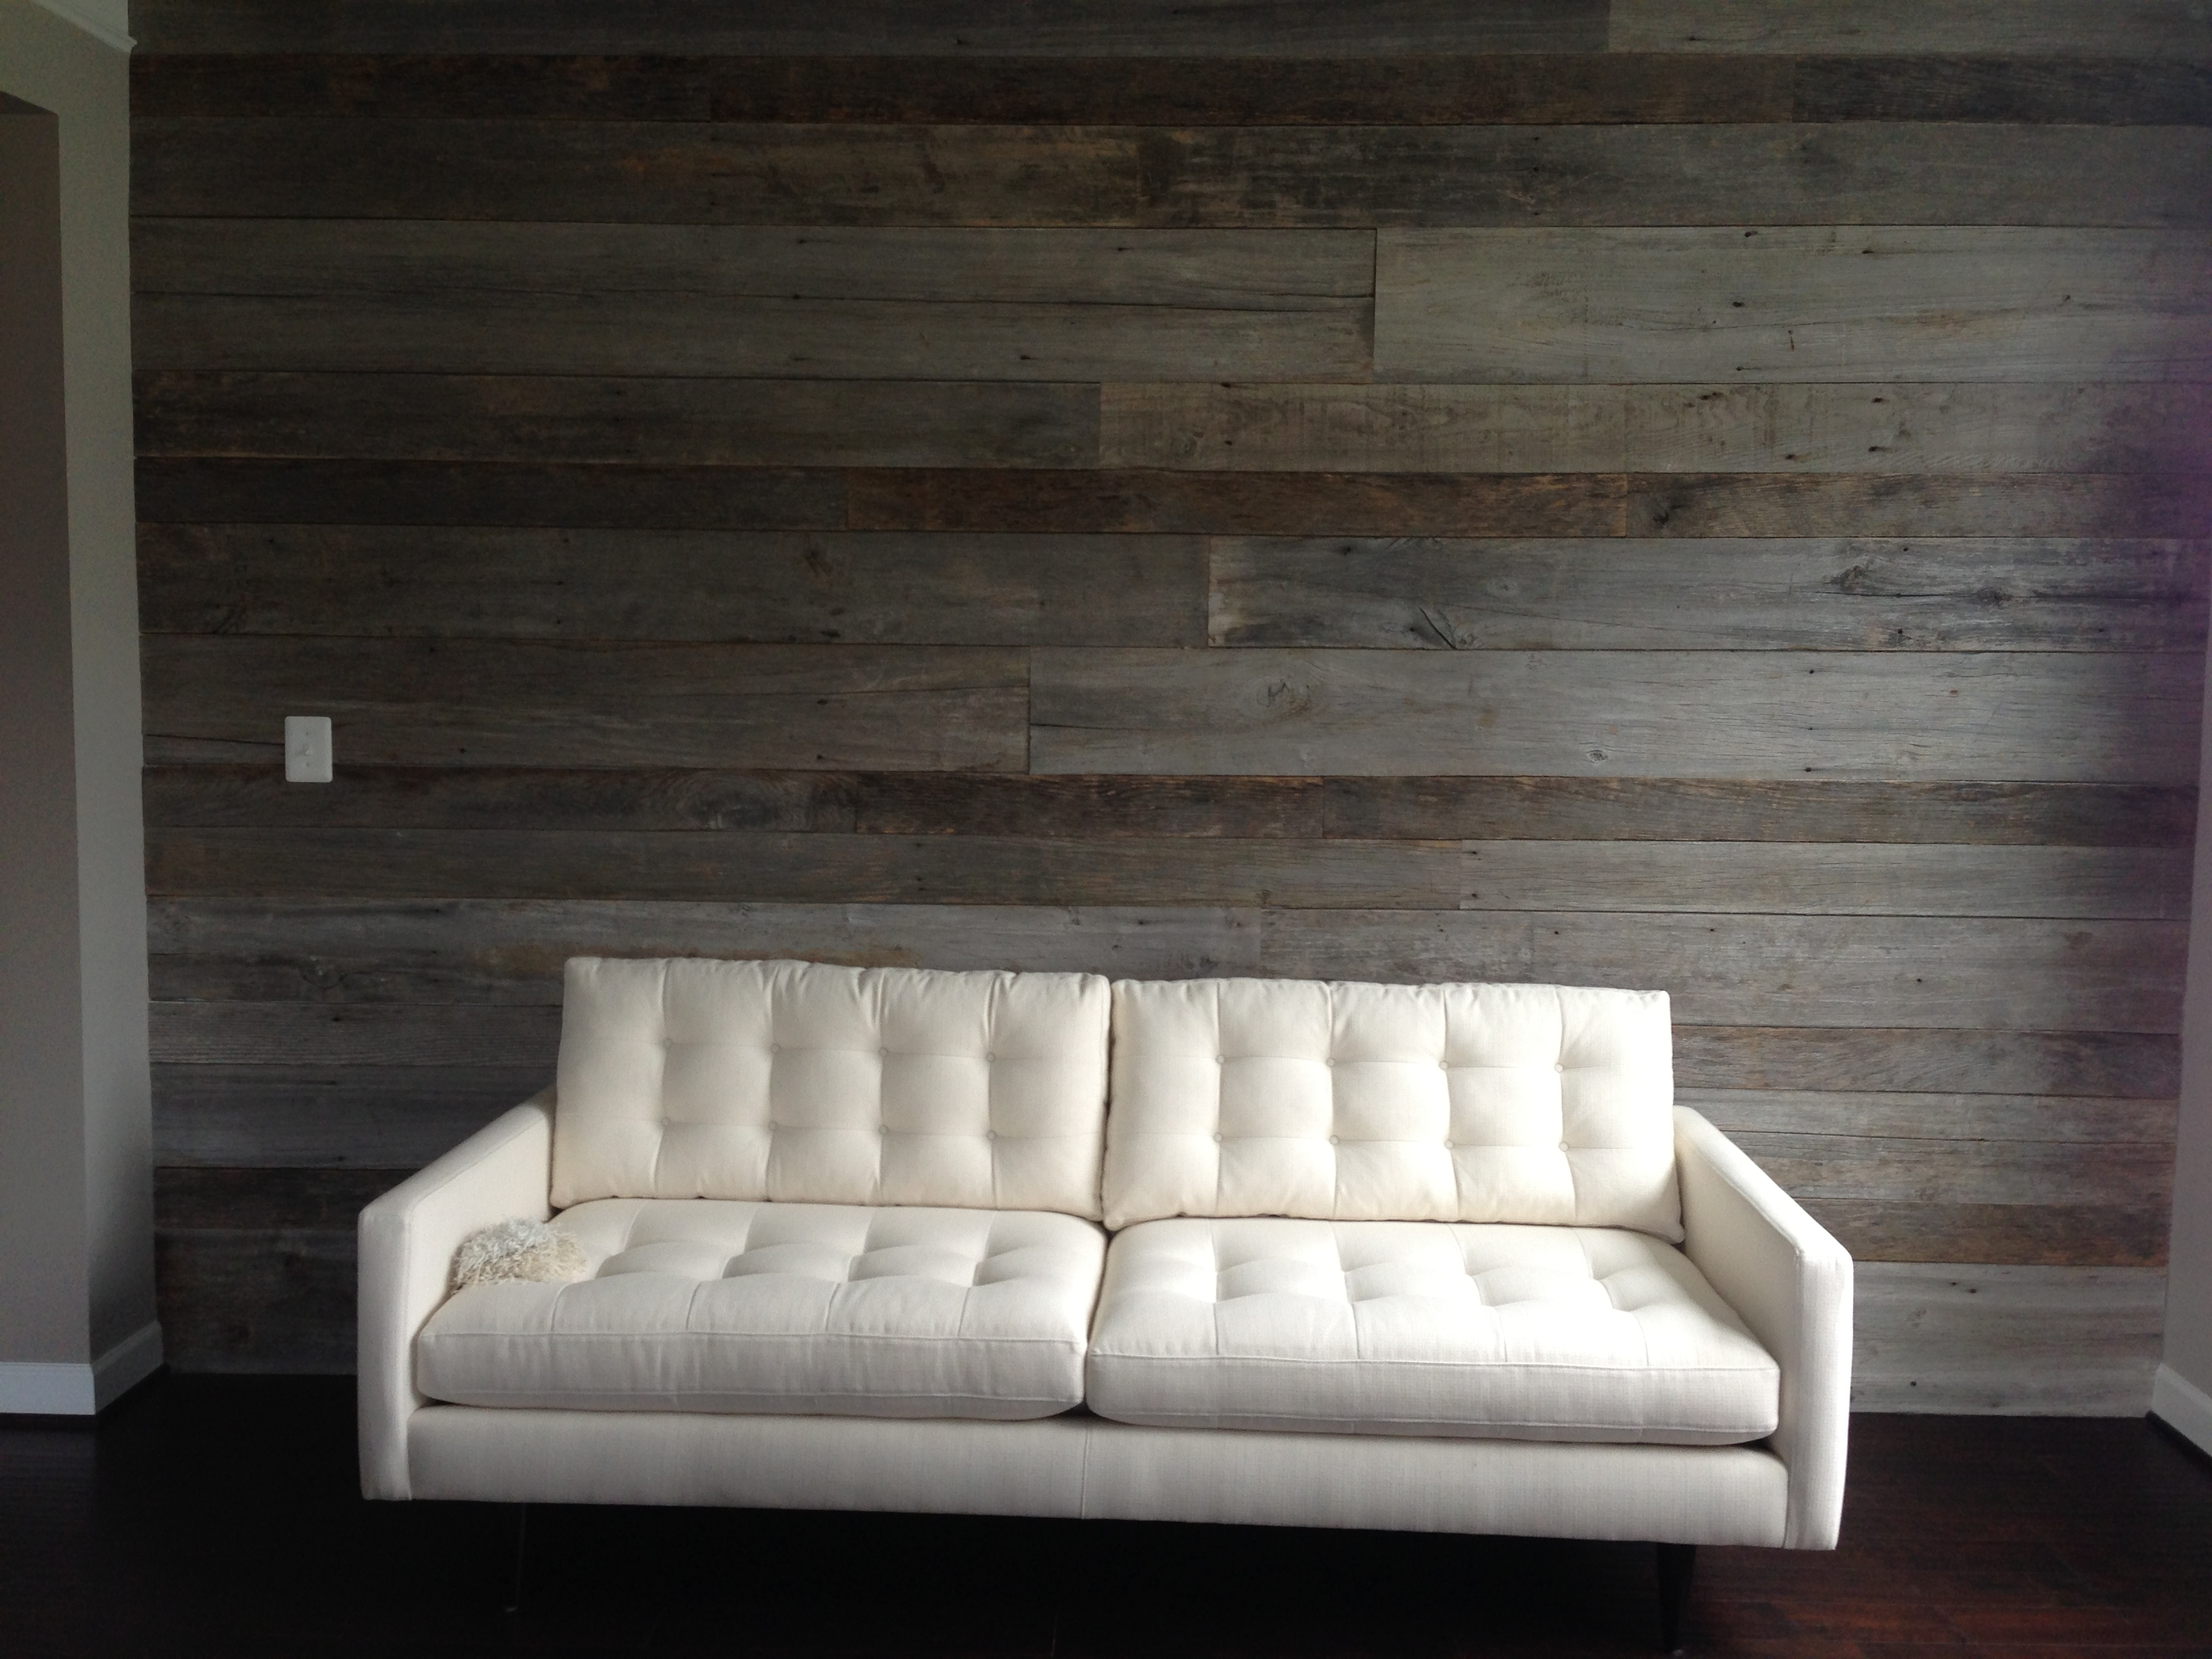 Of Reclaimed Wood Wall Art Rukle After Image Decor Paneling Throughout Most Current Dark Wood Wall Art (View 14 of 15)